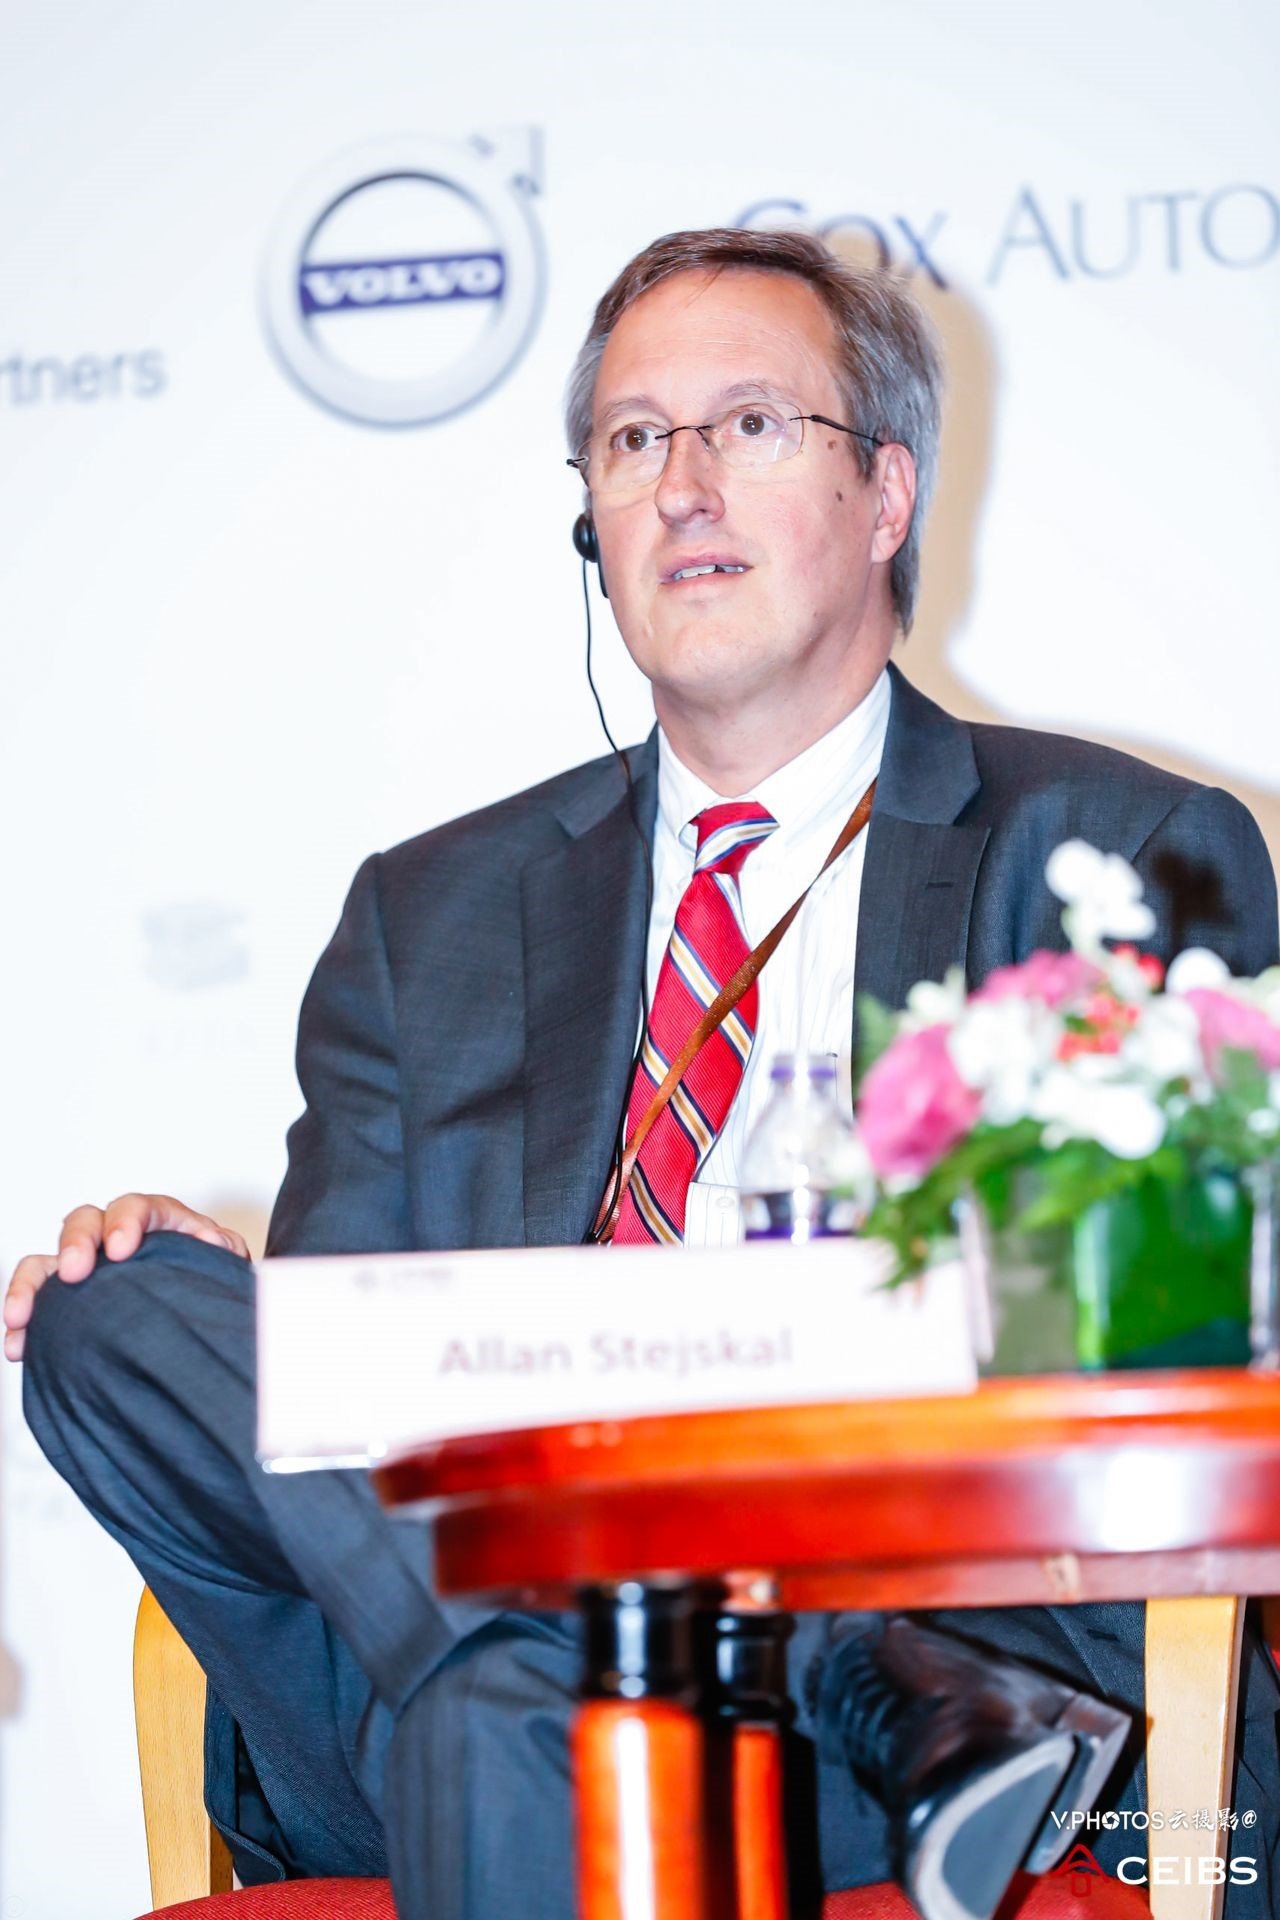 Mr. Allan Stejskal, CEO, incadea (a Cox Automotive Brand).